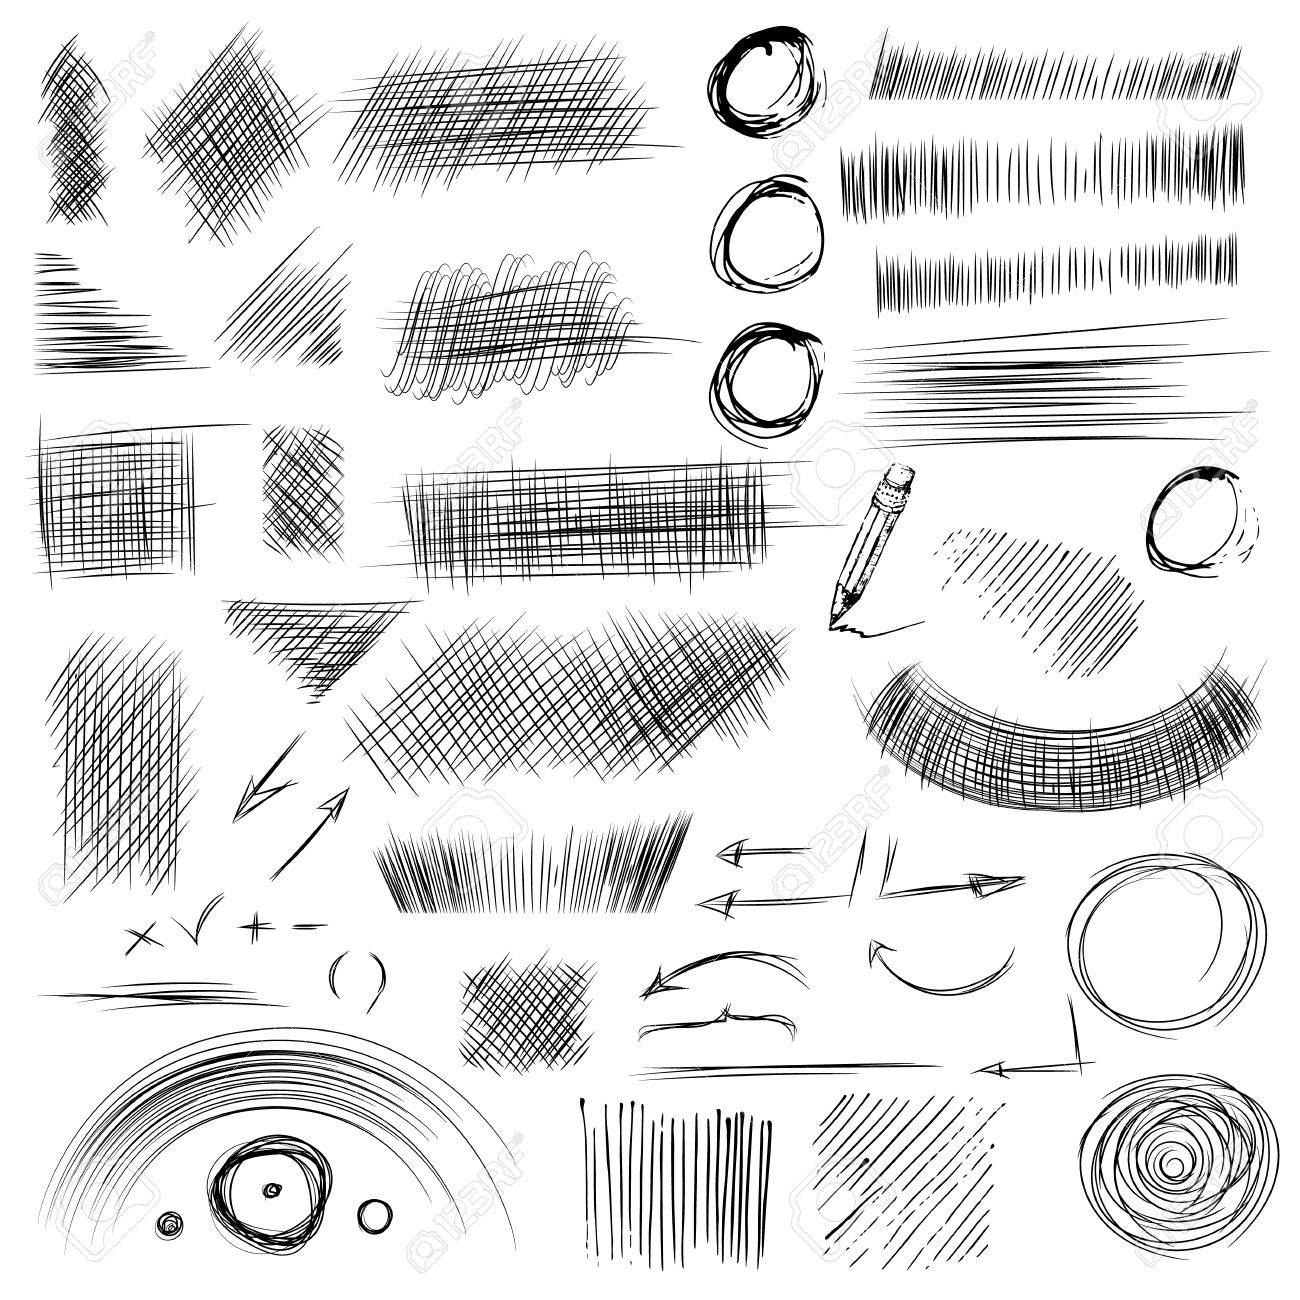 Pencil sketches hand drawn scribble shapes a set of doodle line drawings vector